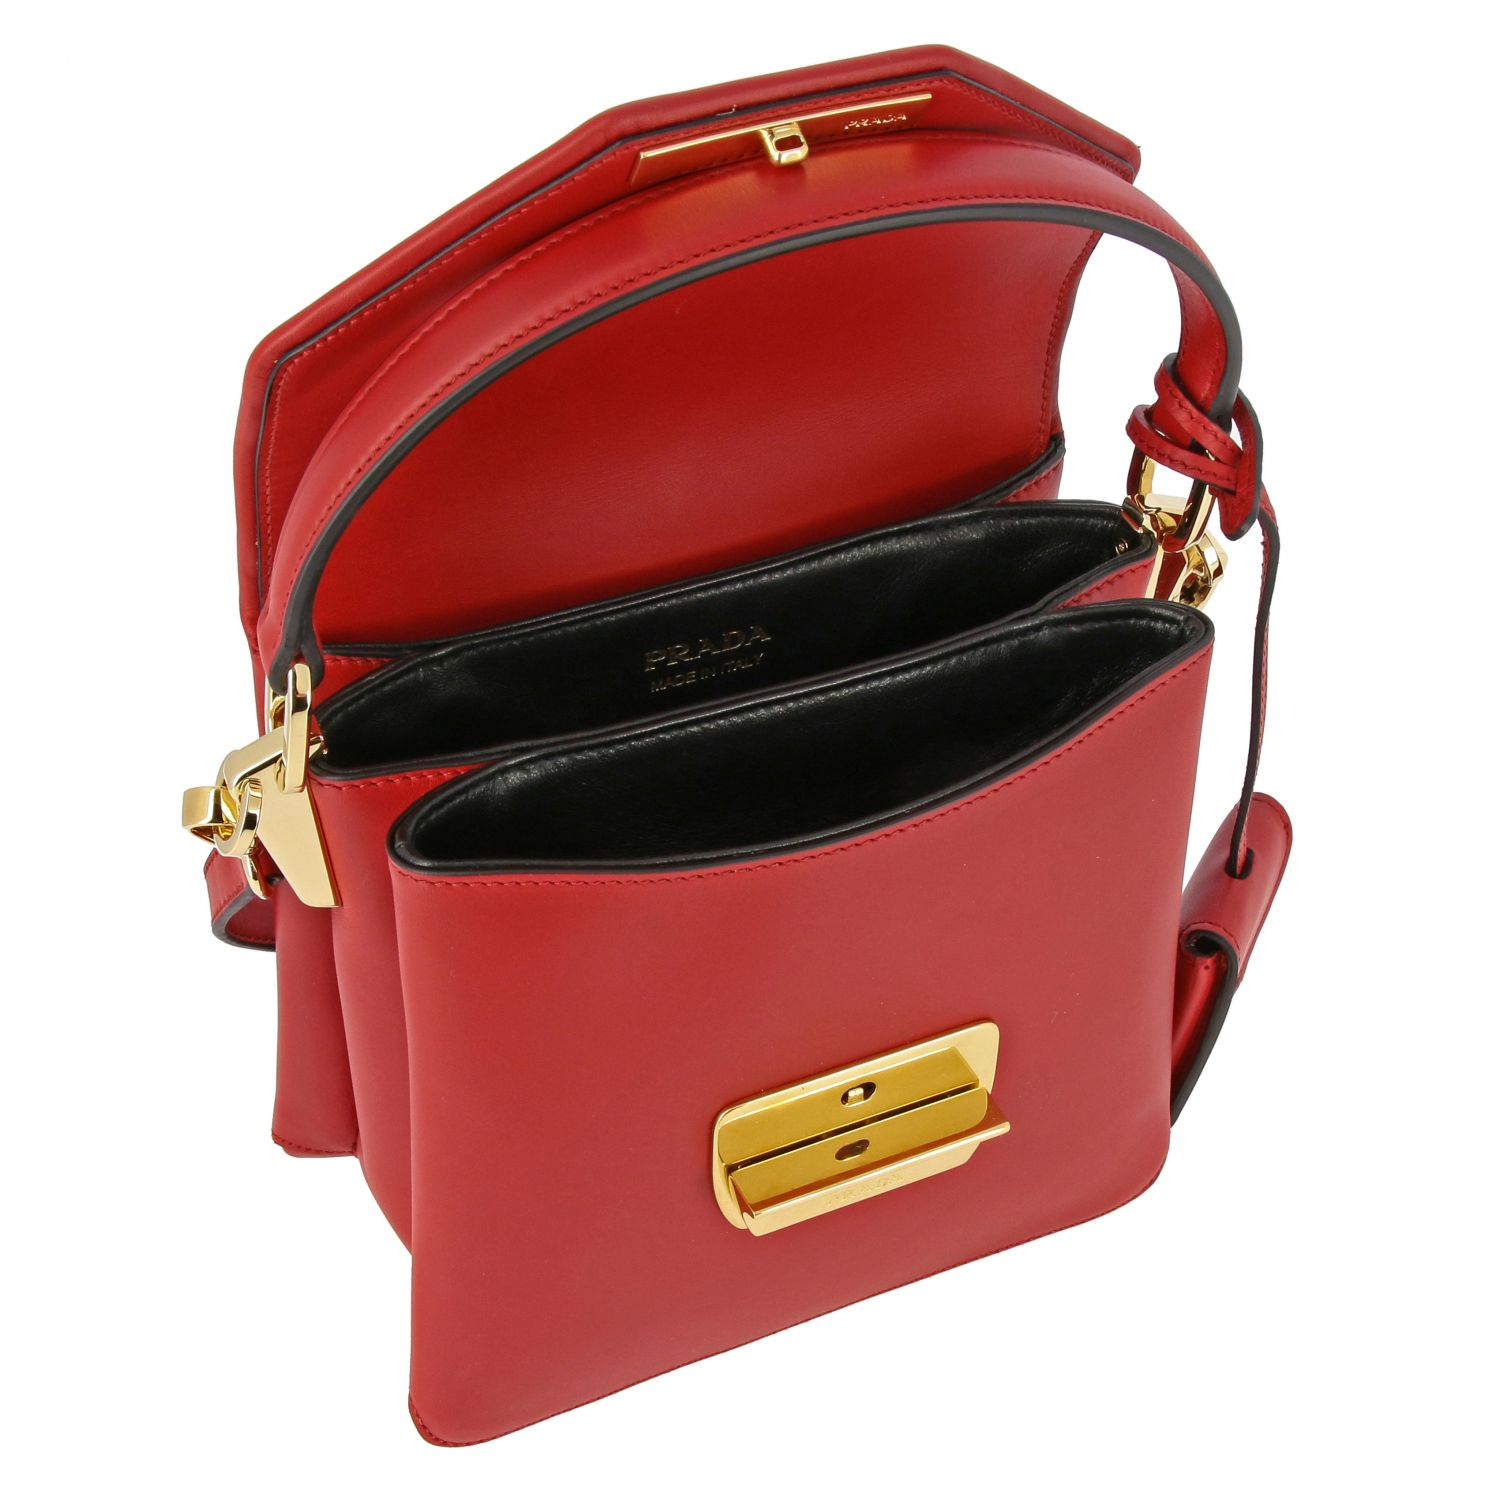 Prada bag in smooth leather with handle red 5